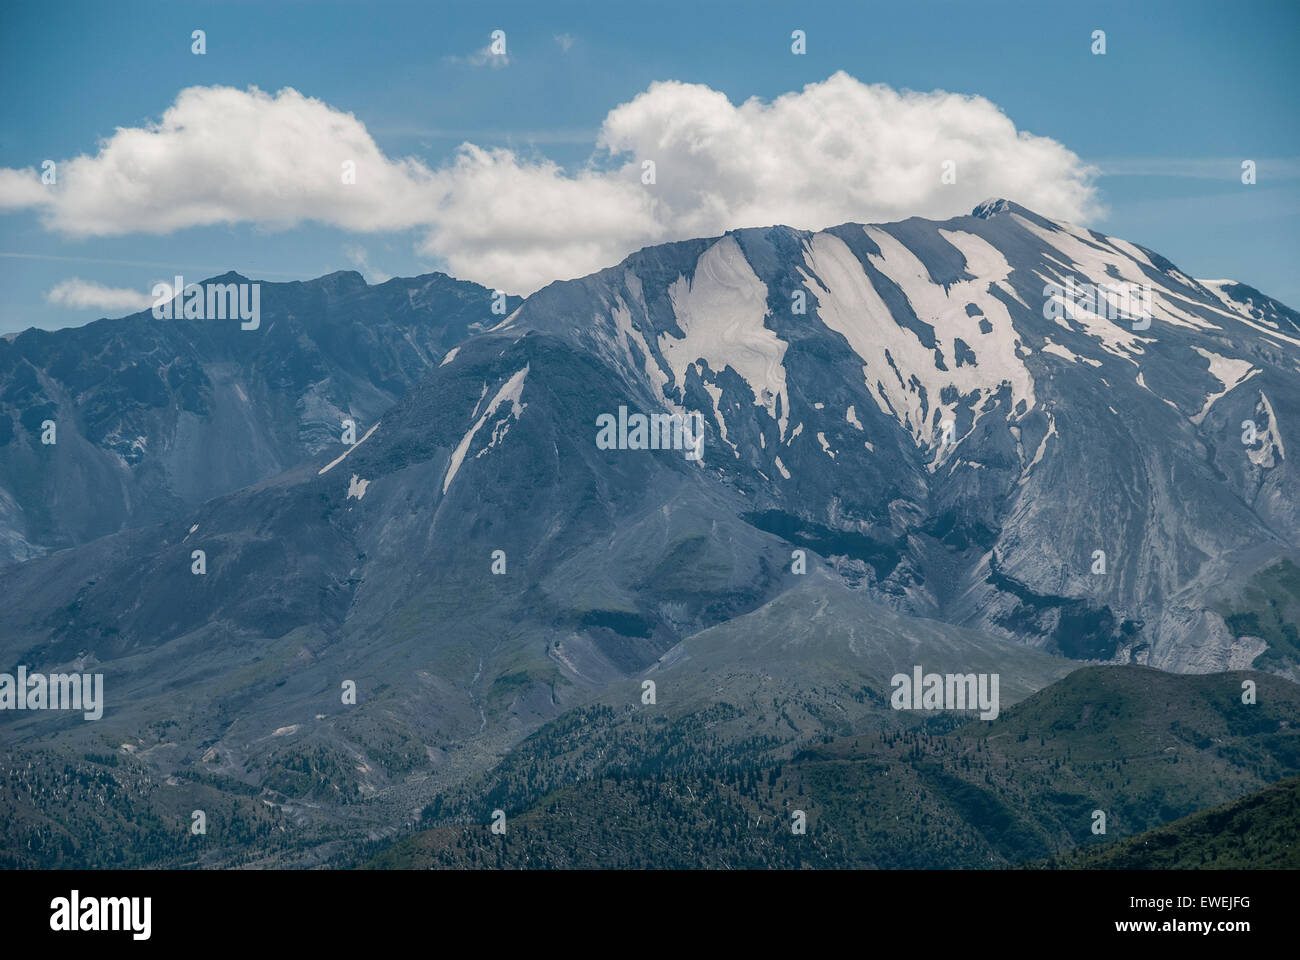 Mount Saint Helens from Hoffstadt Bluffs Visitor Center in Washington State. - Stock Image